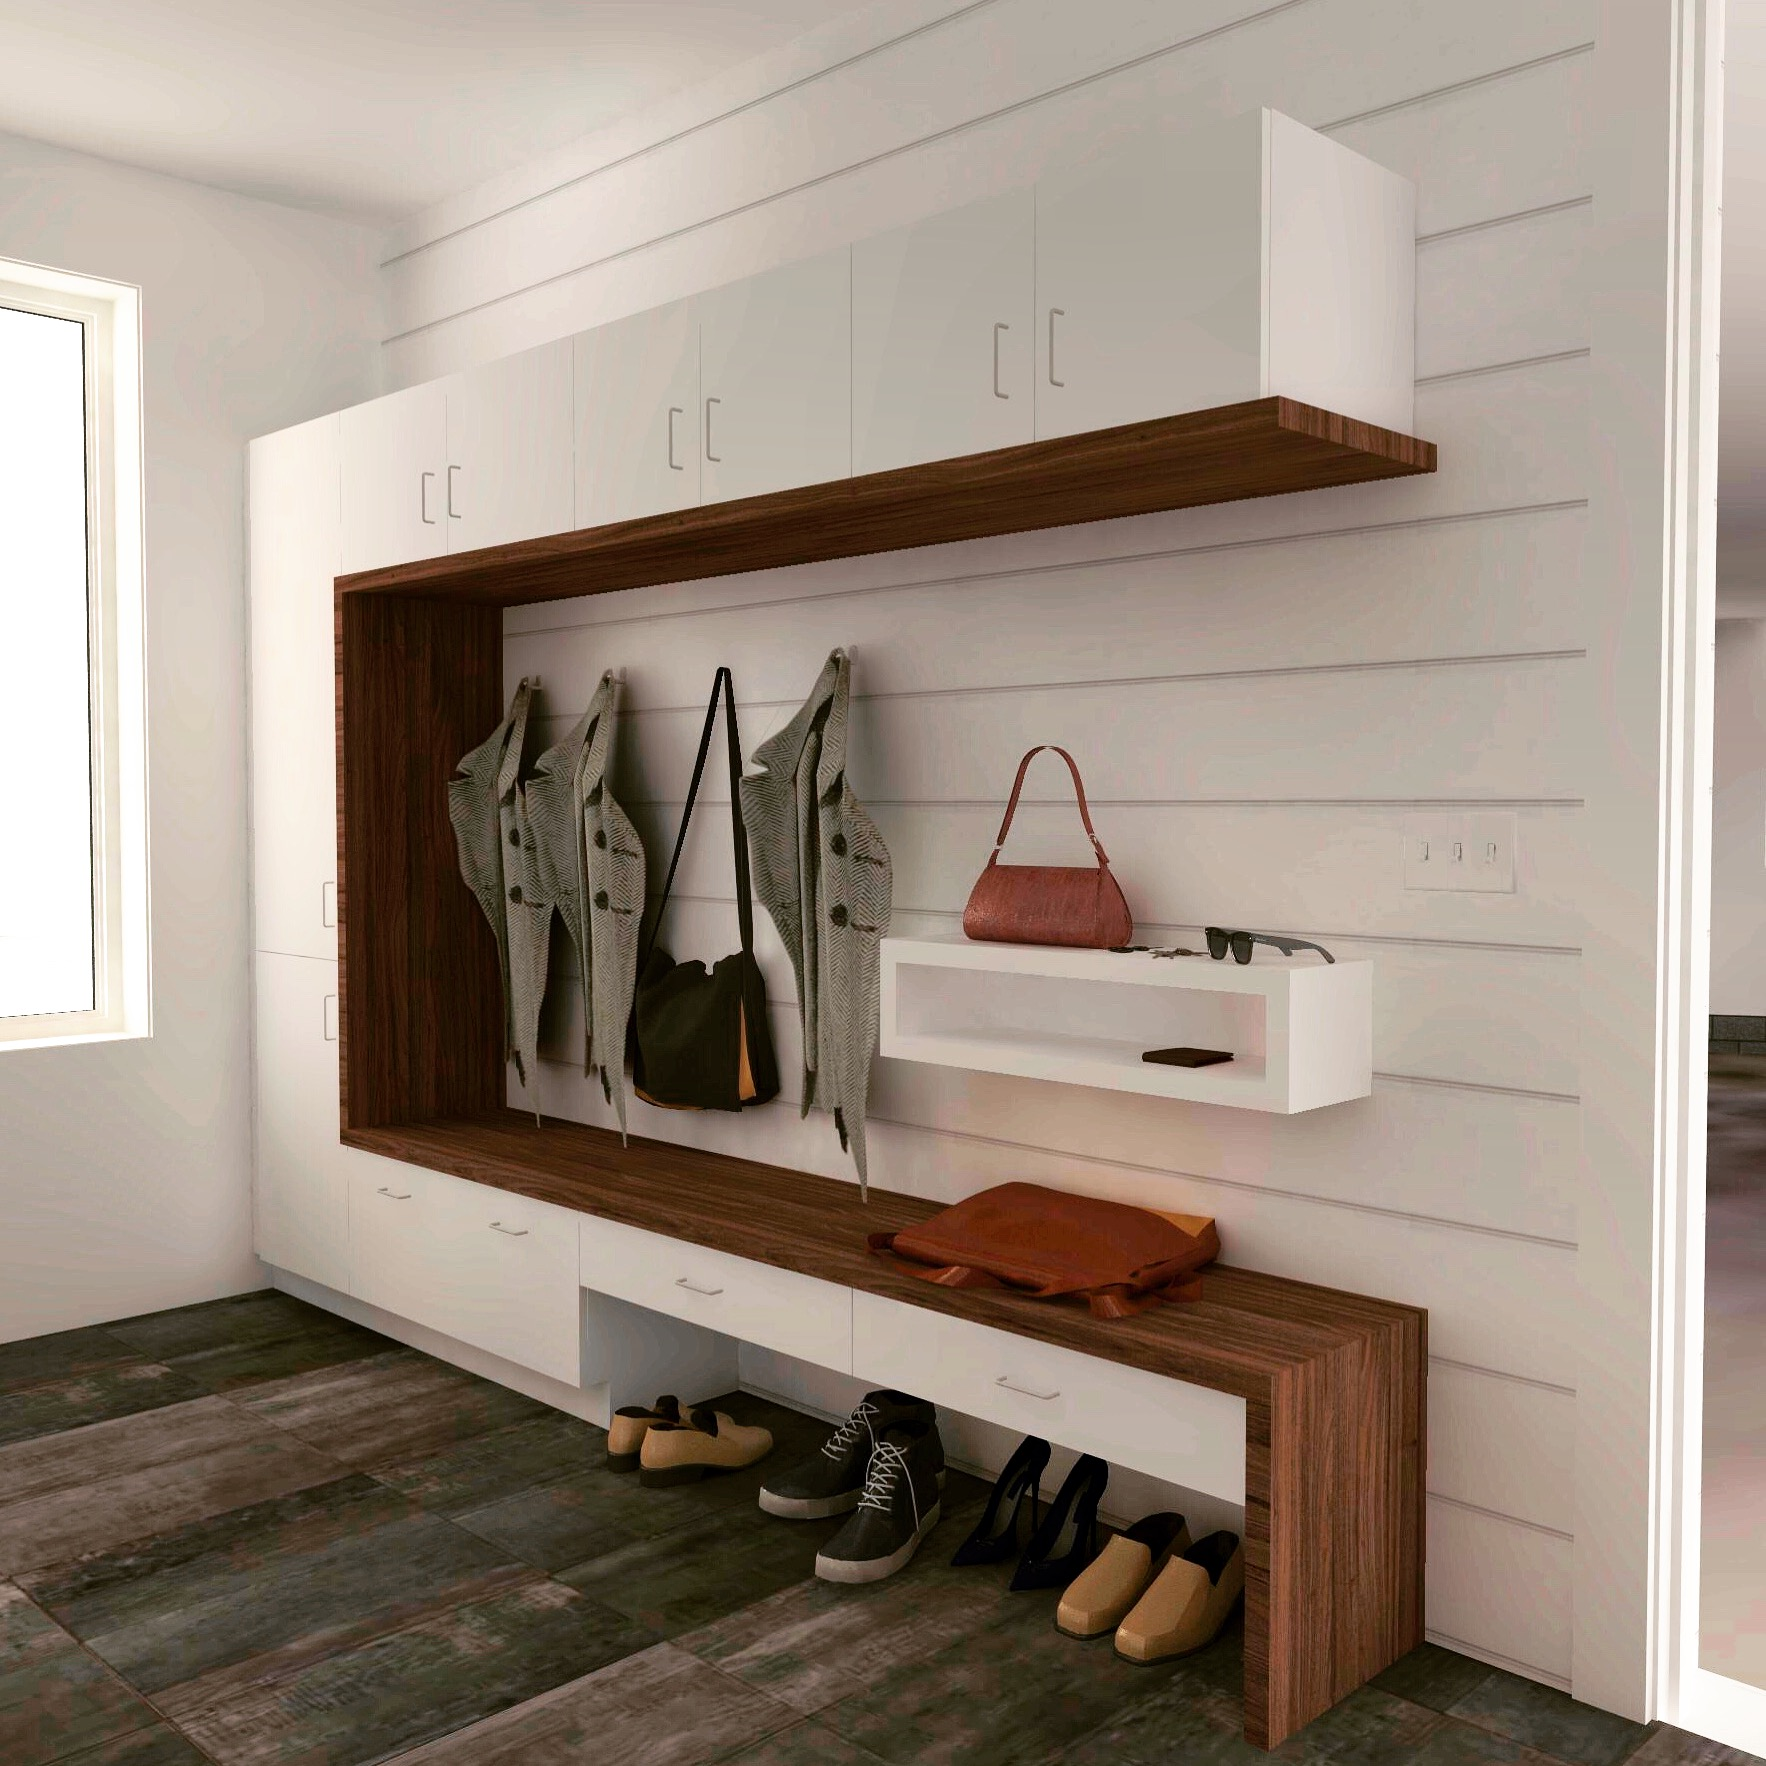 Ikea Bathroom Storage Ideas Modern Mudroom Lockers Design Labra Design Build